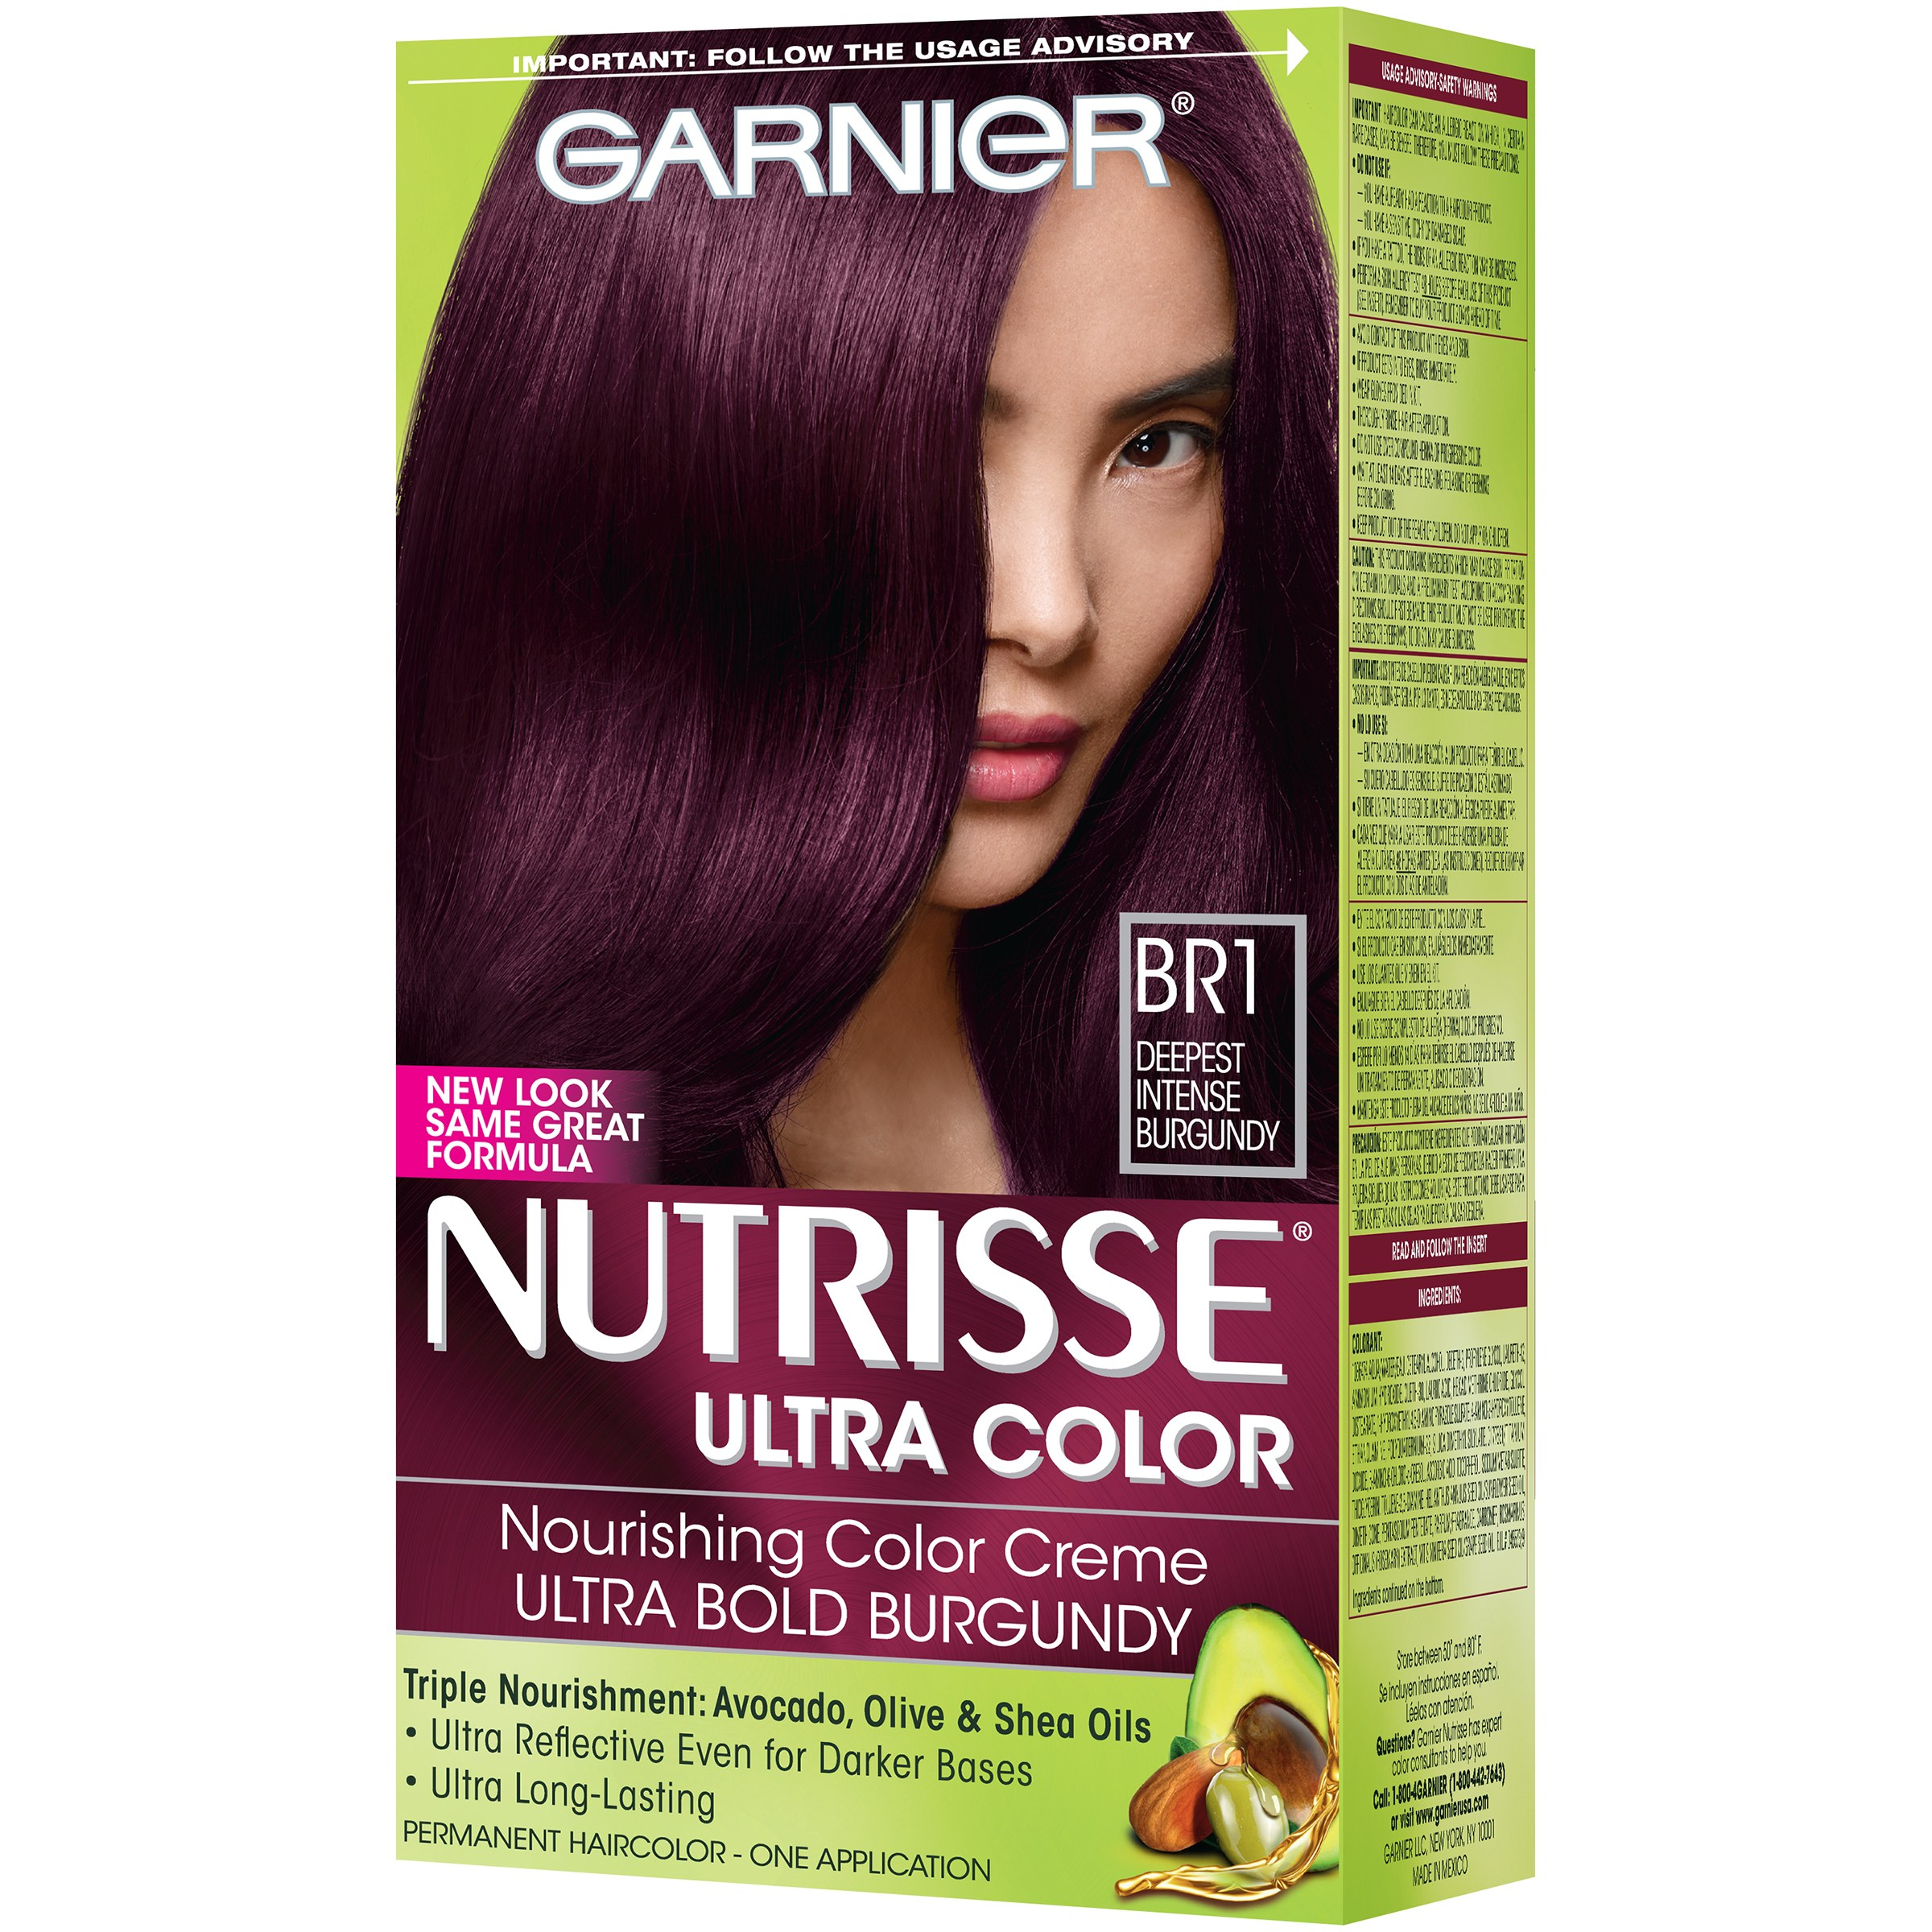 Garnier Nutrisse Ultra Color Nourishing Creme Bl 26 Reflective Auburn Black